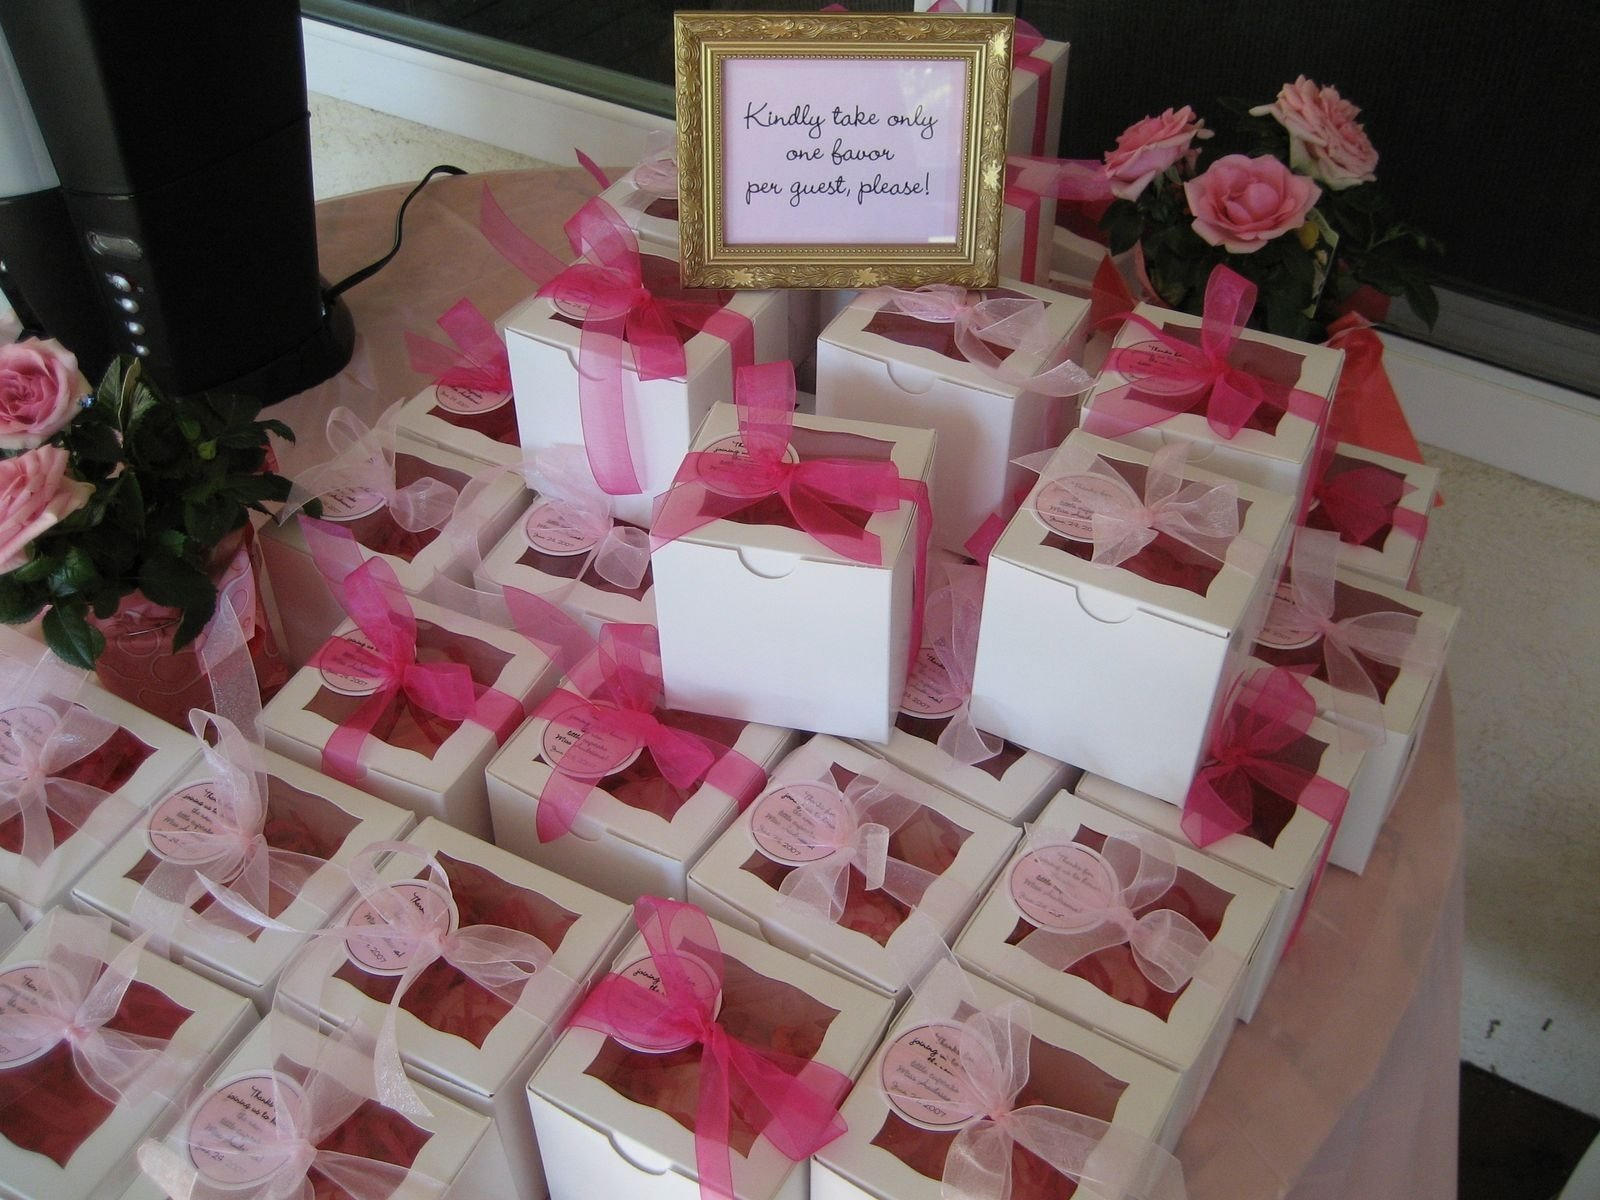 10 Attractive Baby Shower Favor Ideas To Make Yourself pink box baby shower door prize ideas baby shower ideas gallery 1 2021